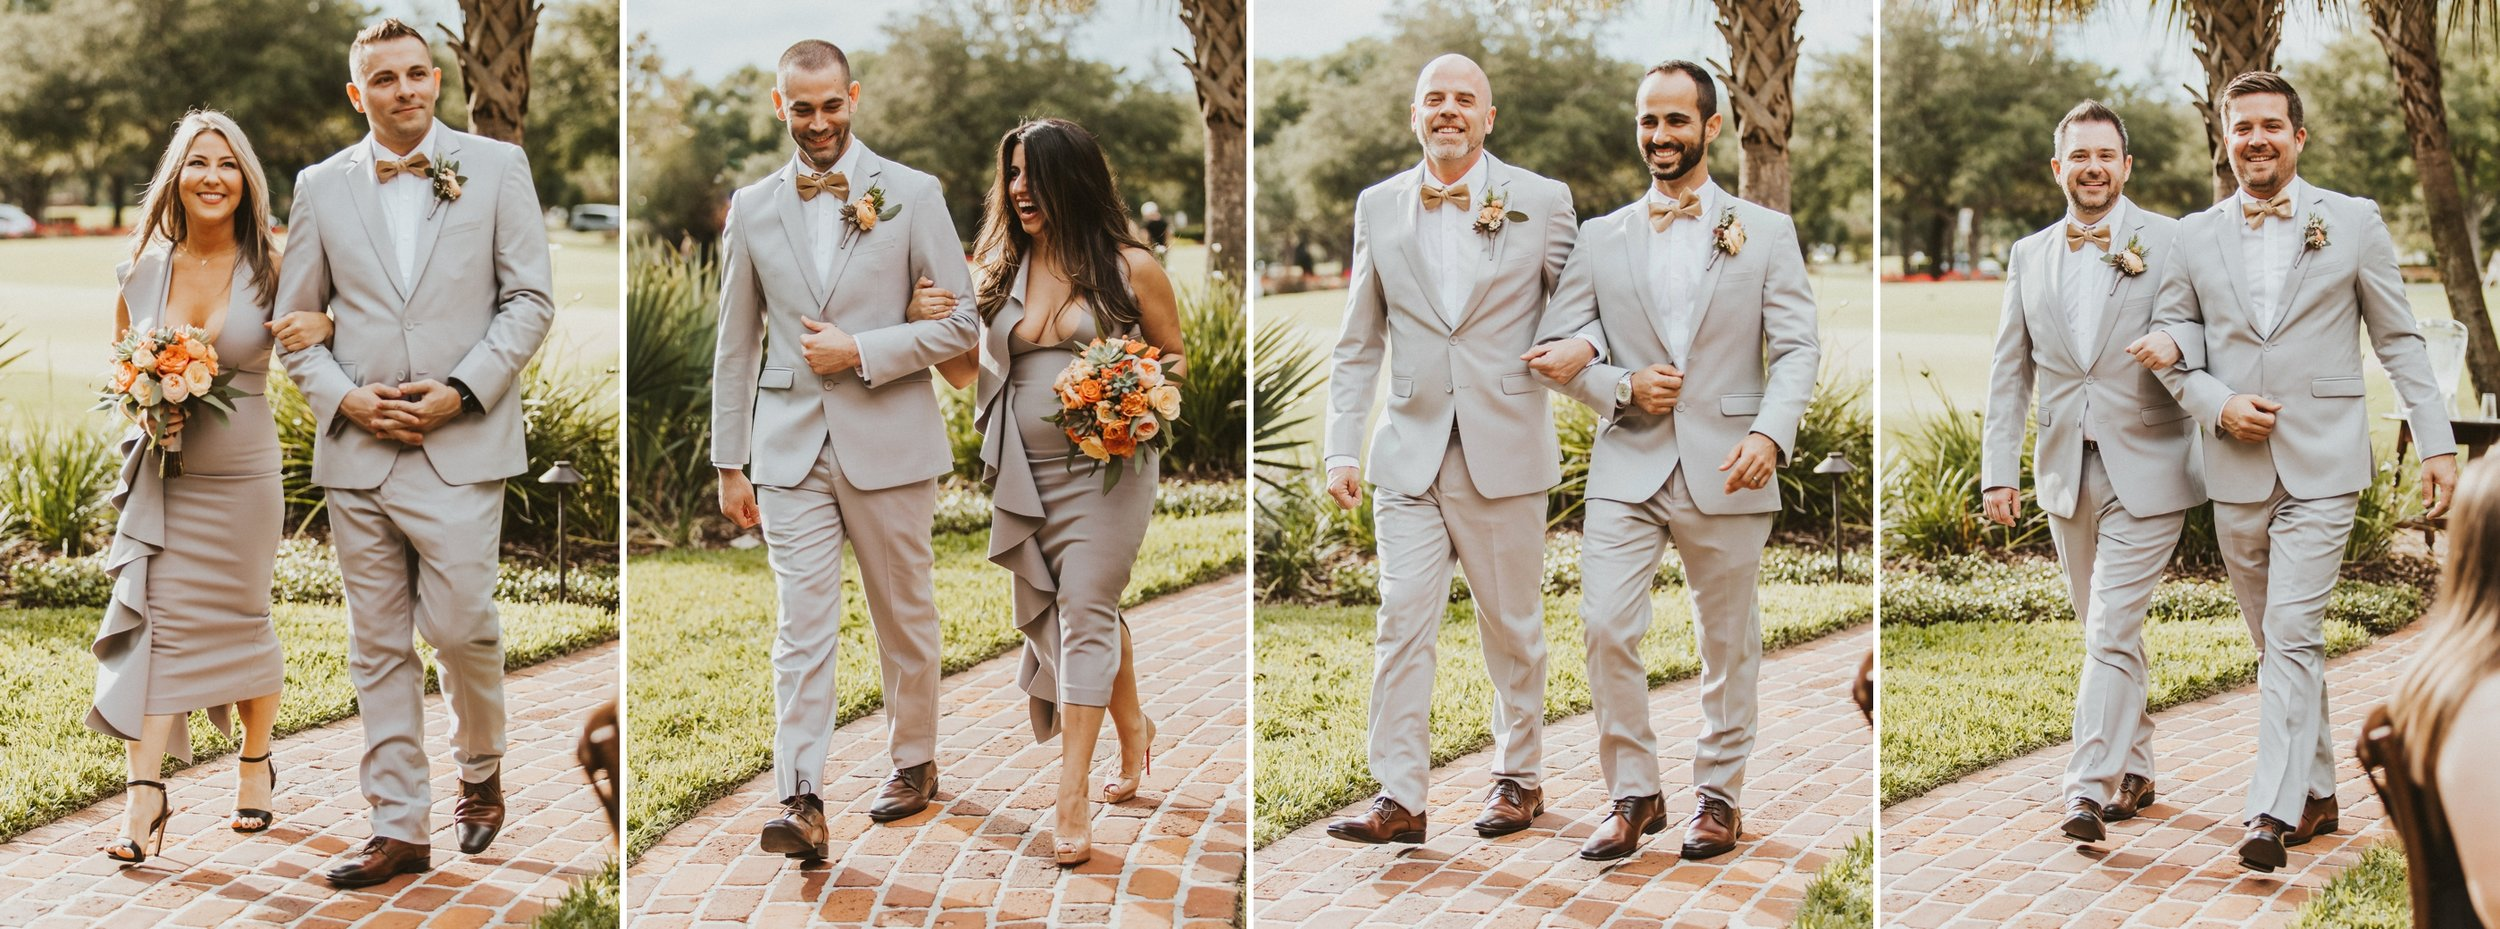 Navy & Copper Casa Feliz Wedding- Travel Inspired LGBT Groom + Groom Wedding- via ShainaDeCiryan.com21.jpg